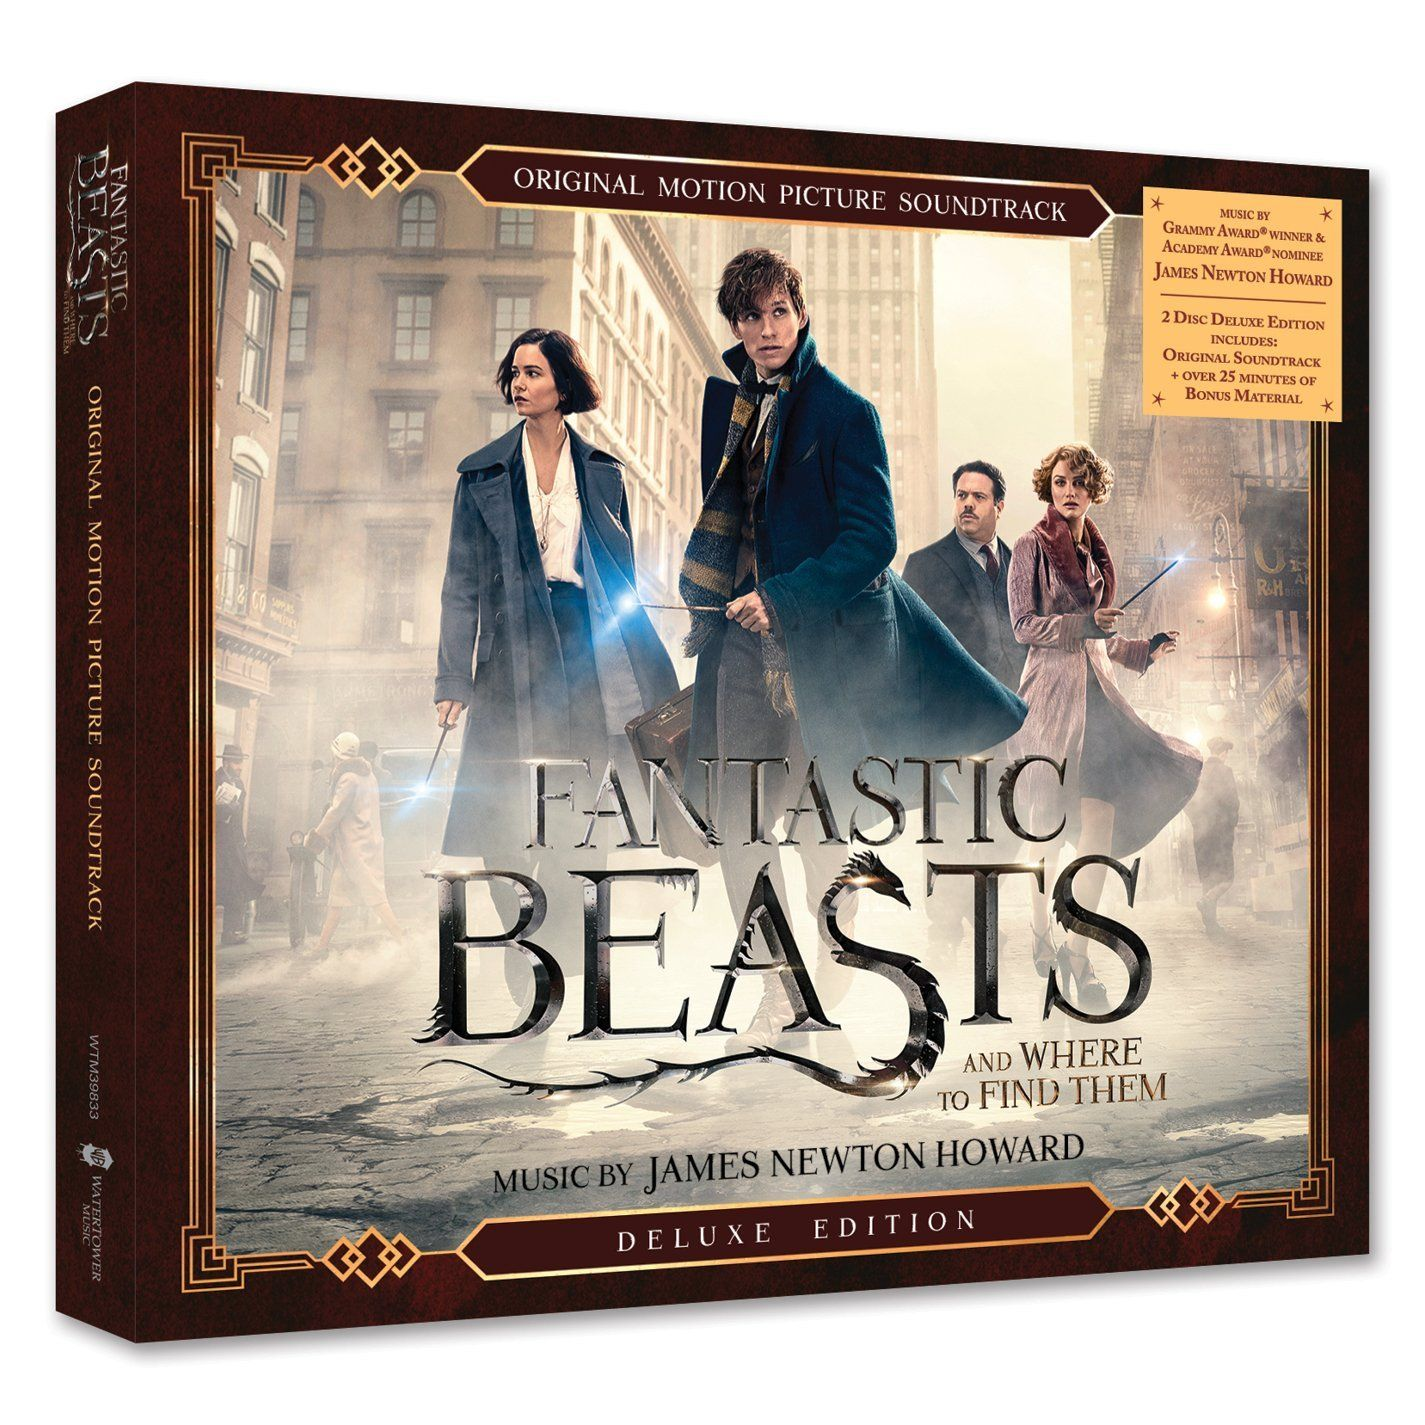 Fantastic Beasts And Where To Find Them: Original Soundtrack